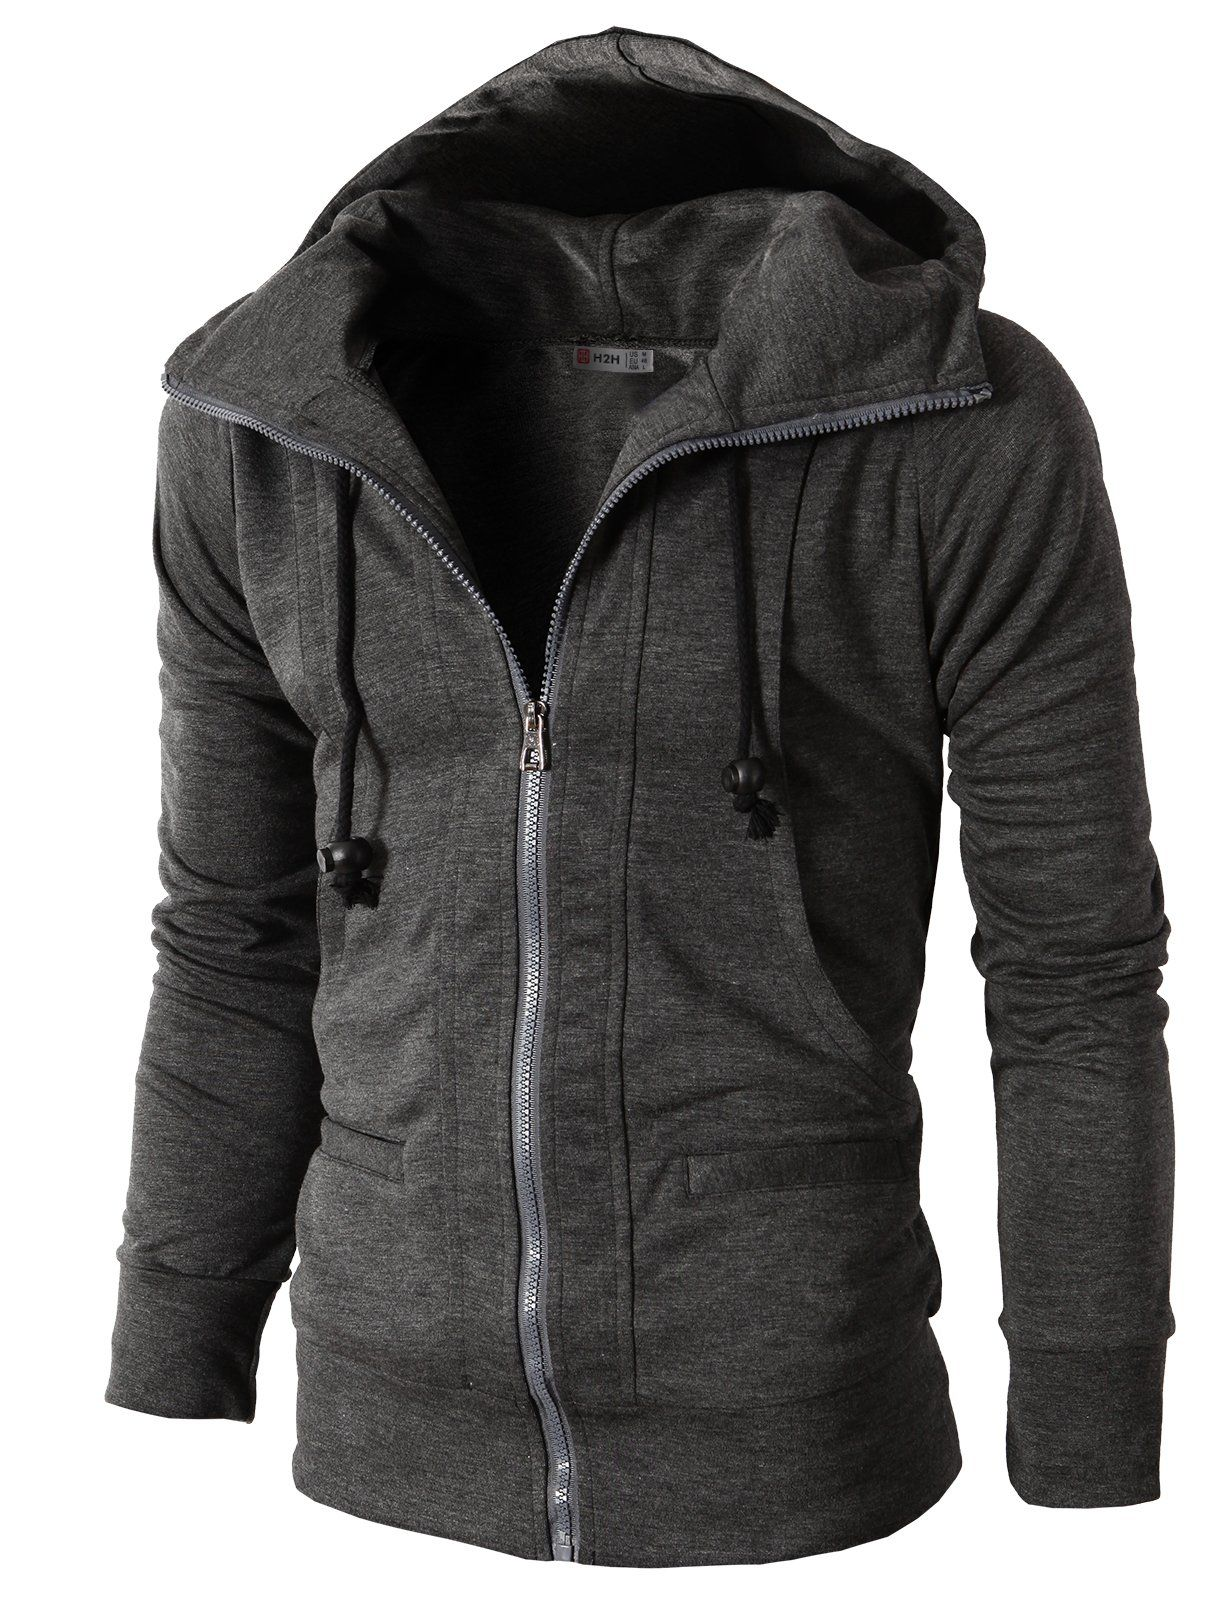 H2h Mens Casual Fashion Active Jersey Slim Fit Hoodie Zip Up Charcoal Us Xl Asia Xxxl Kmohol019 Stylish Hoodies Men Slim Fit Hoodie Hoodies [ 1600 x 1230 Pixel ]